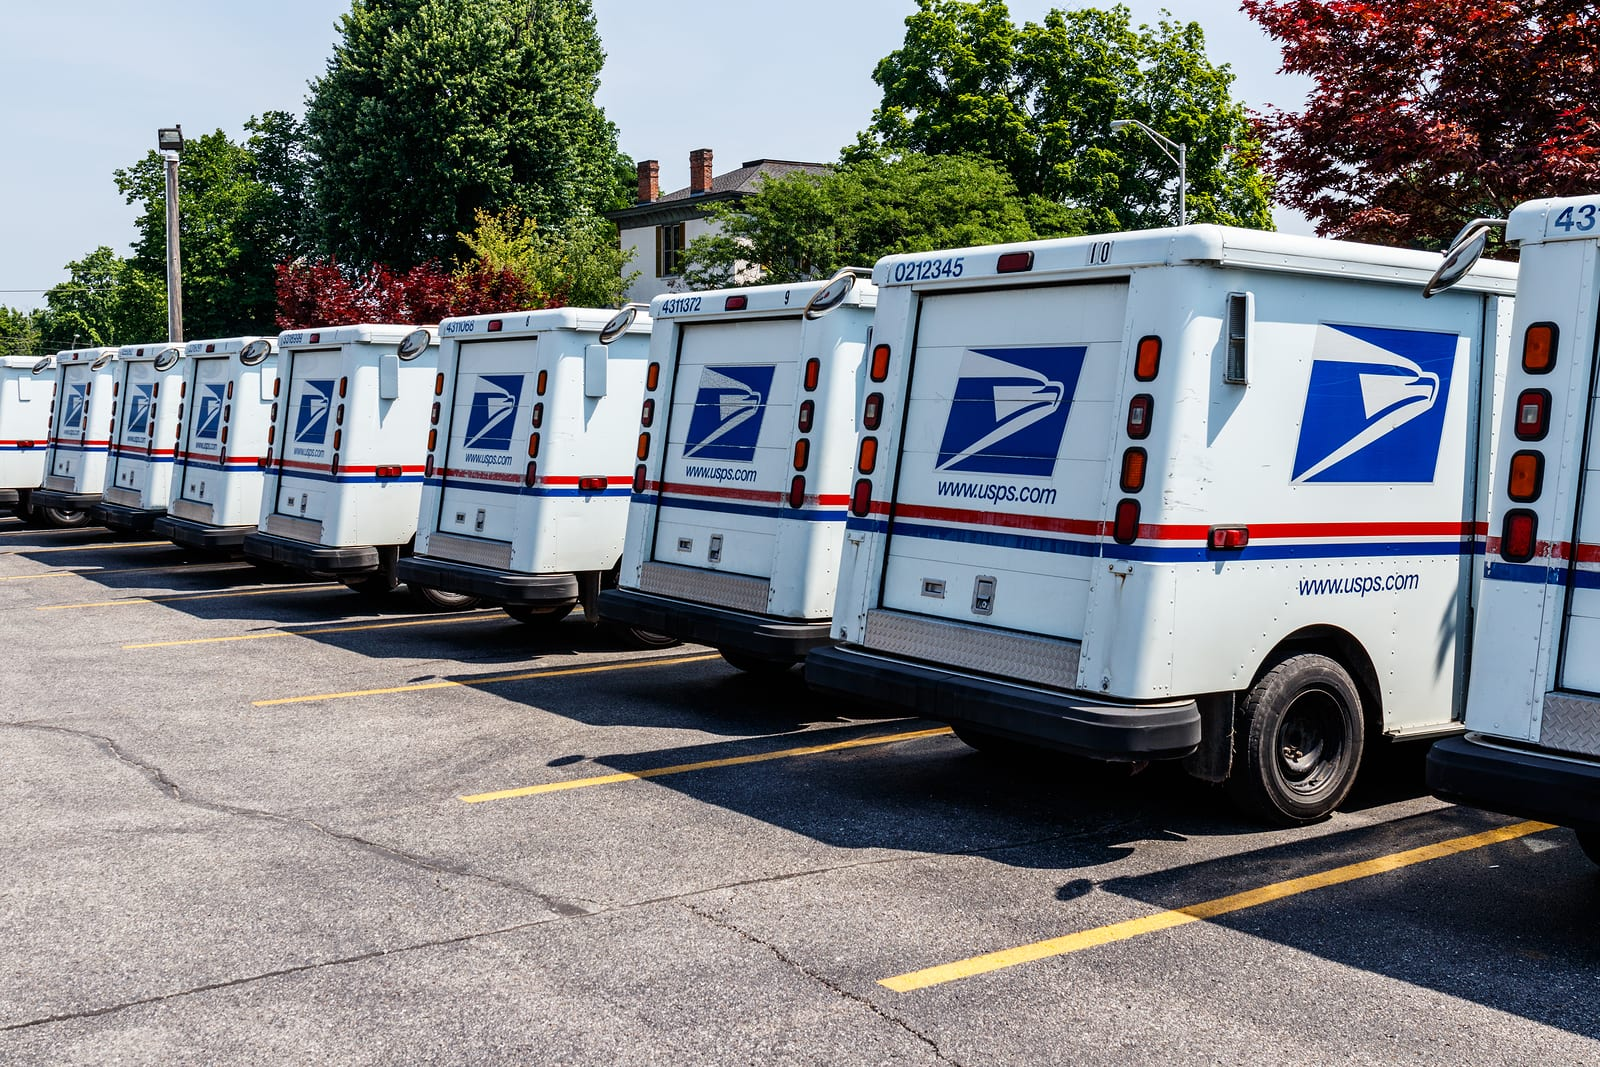 A line of USPS trucks are parked in a parking lot waiting for deliveries.